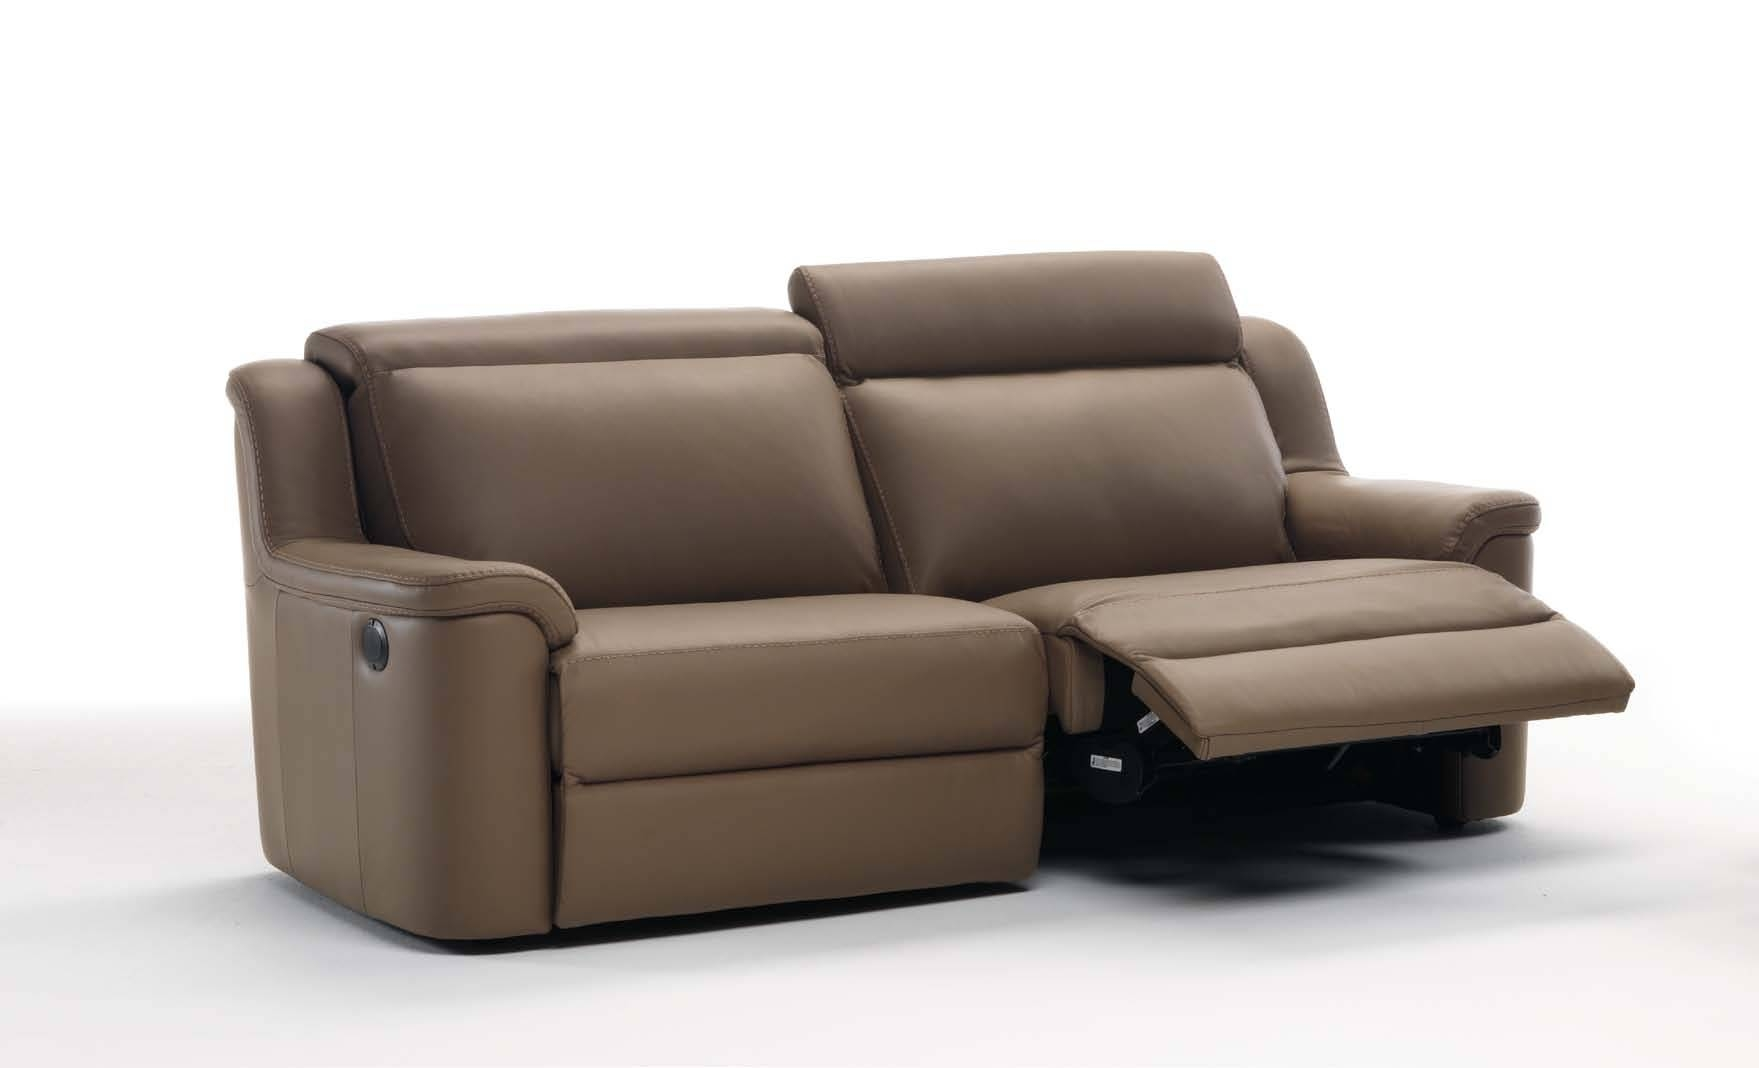 Sofa Recliner | Sofa Regarding Electric Sofa Beds (Photo 12 of 15)